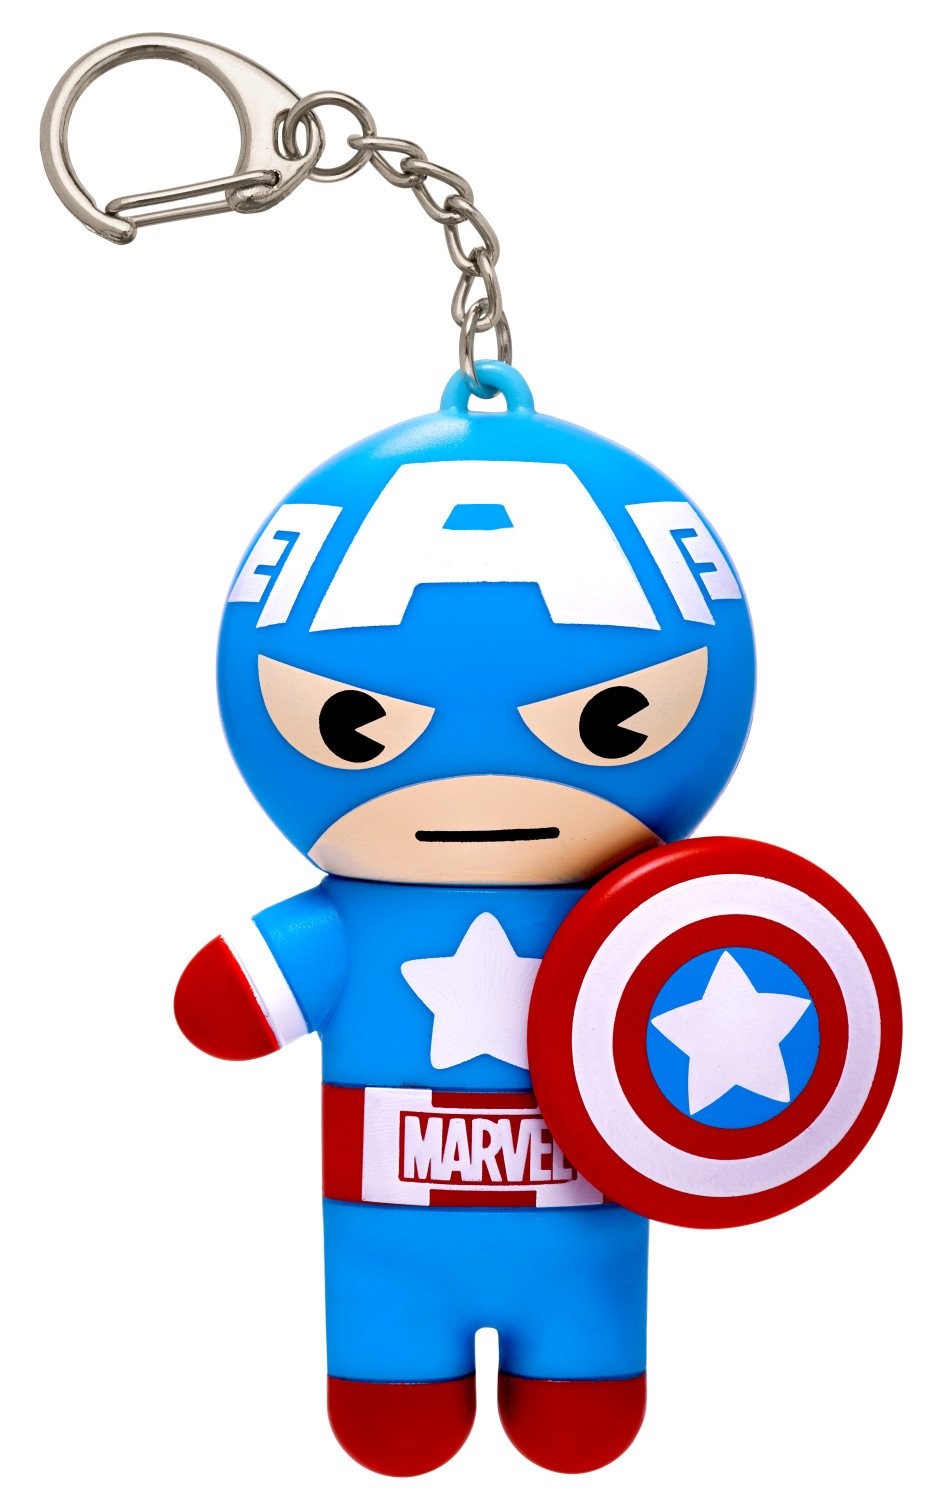 Lip Smacker 82042 Marvel super hero captain america lip balm, 0.14 Ounce, Red, White, & Blue-berry Markwins Beauty Products